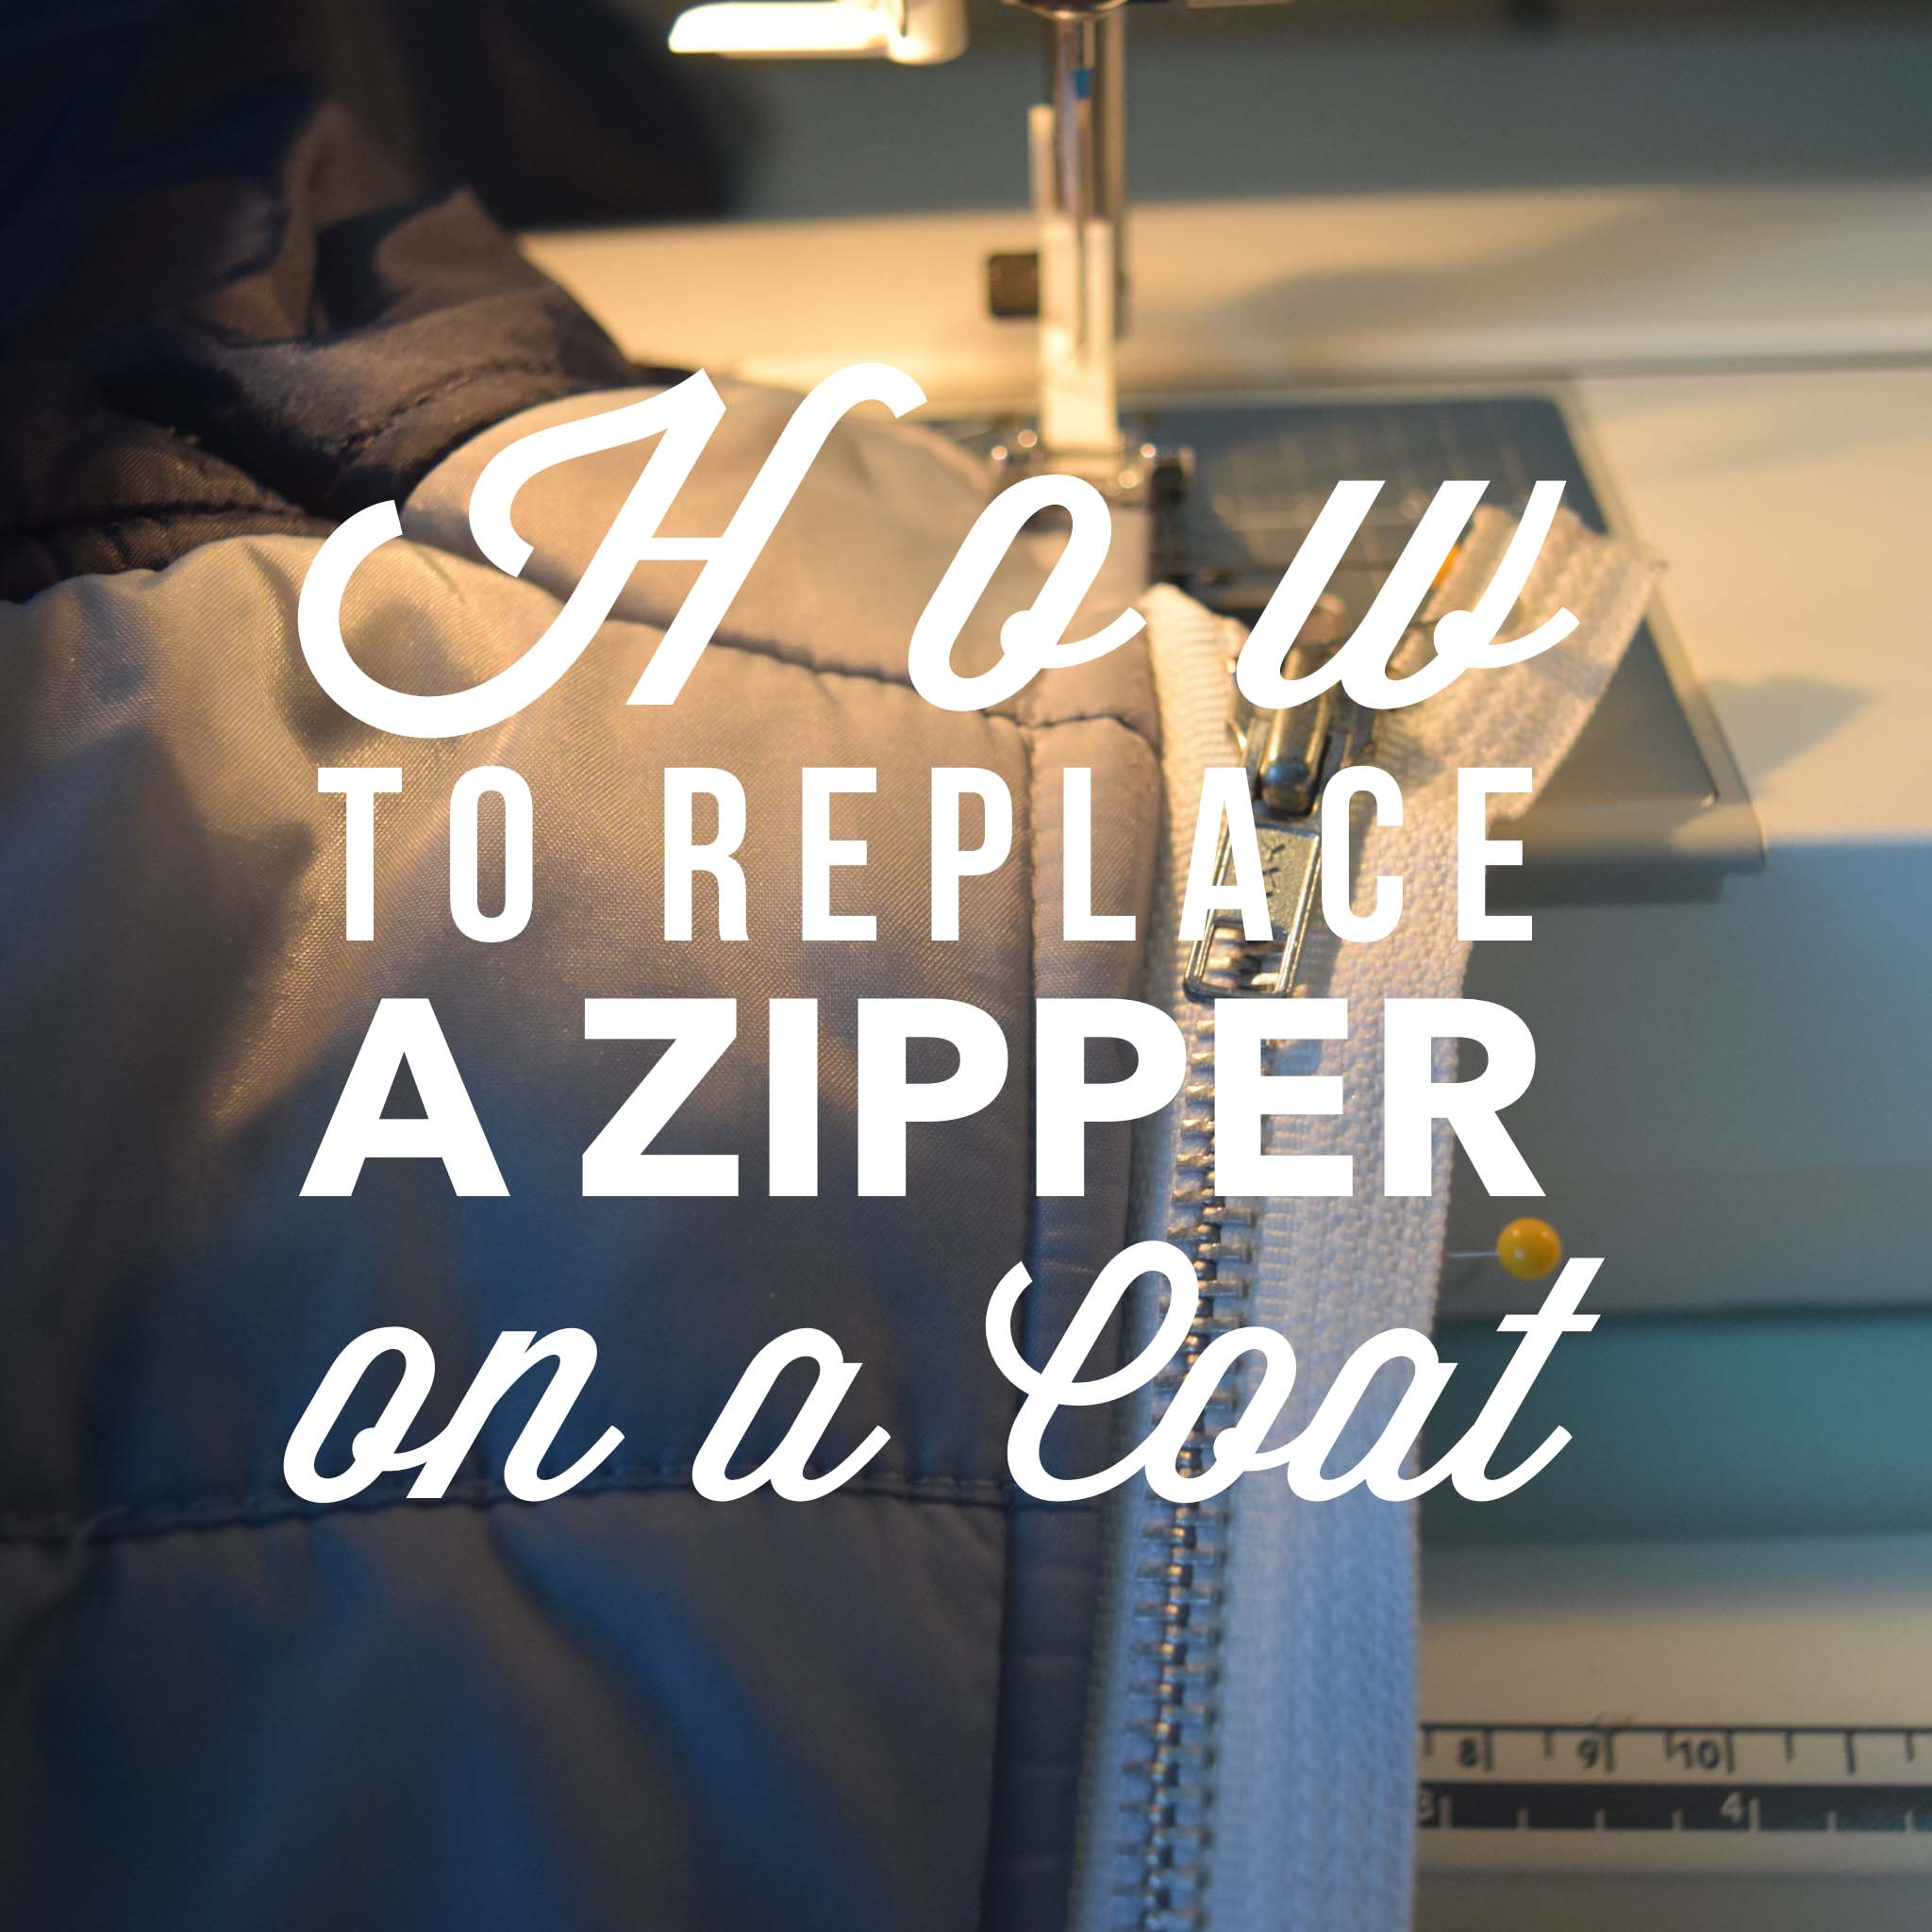 how to replace a zipper on a coat. Black Bedroom Furniture Sets. Home Design Ideas